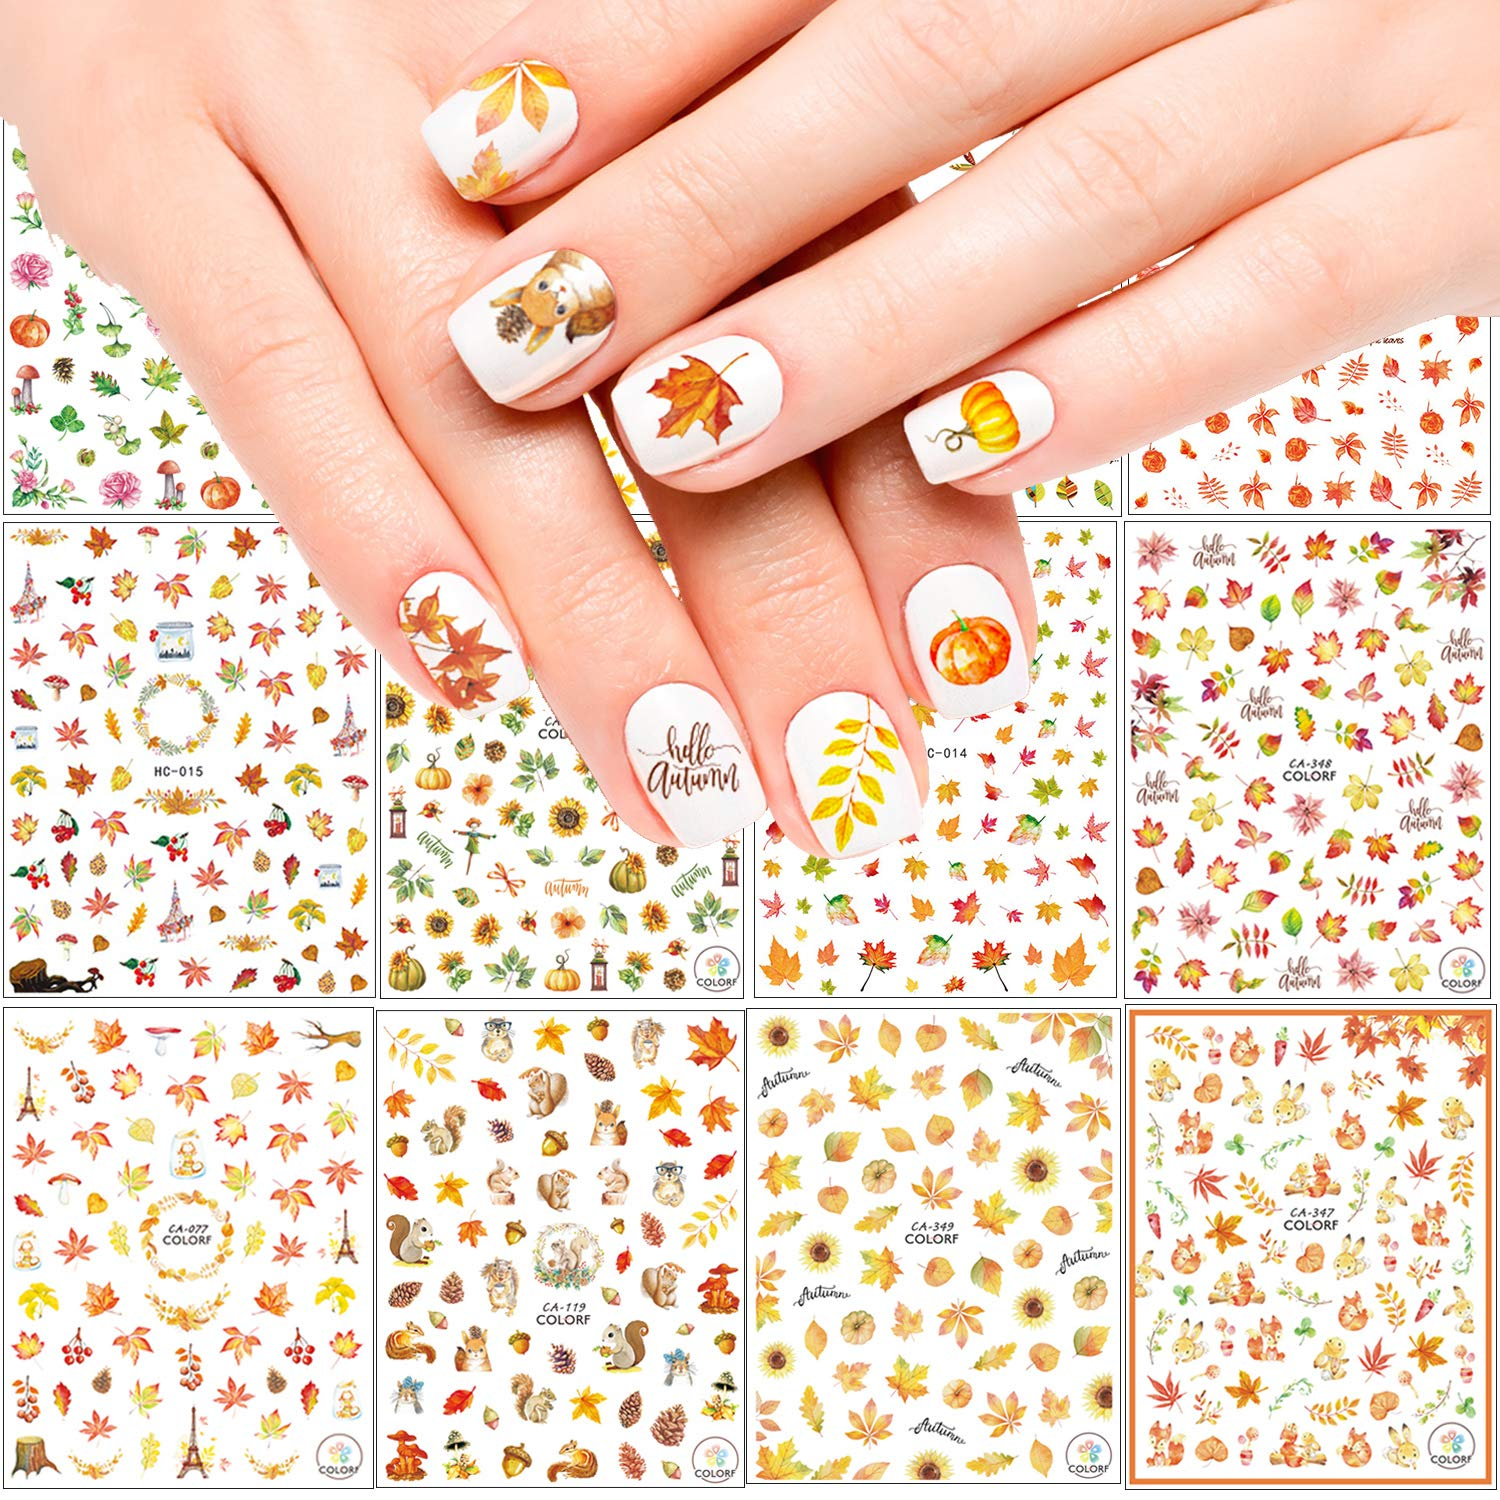 Adurself 1000+ Patterns Autumn Nail Decals Special price for a limited time Great interest Art Fall 3D Self